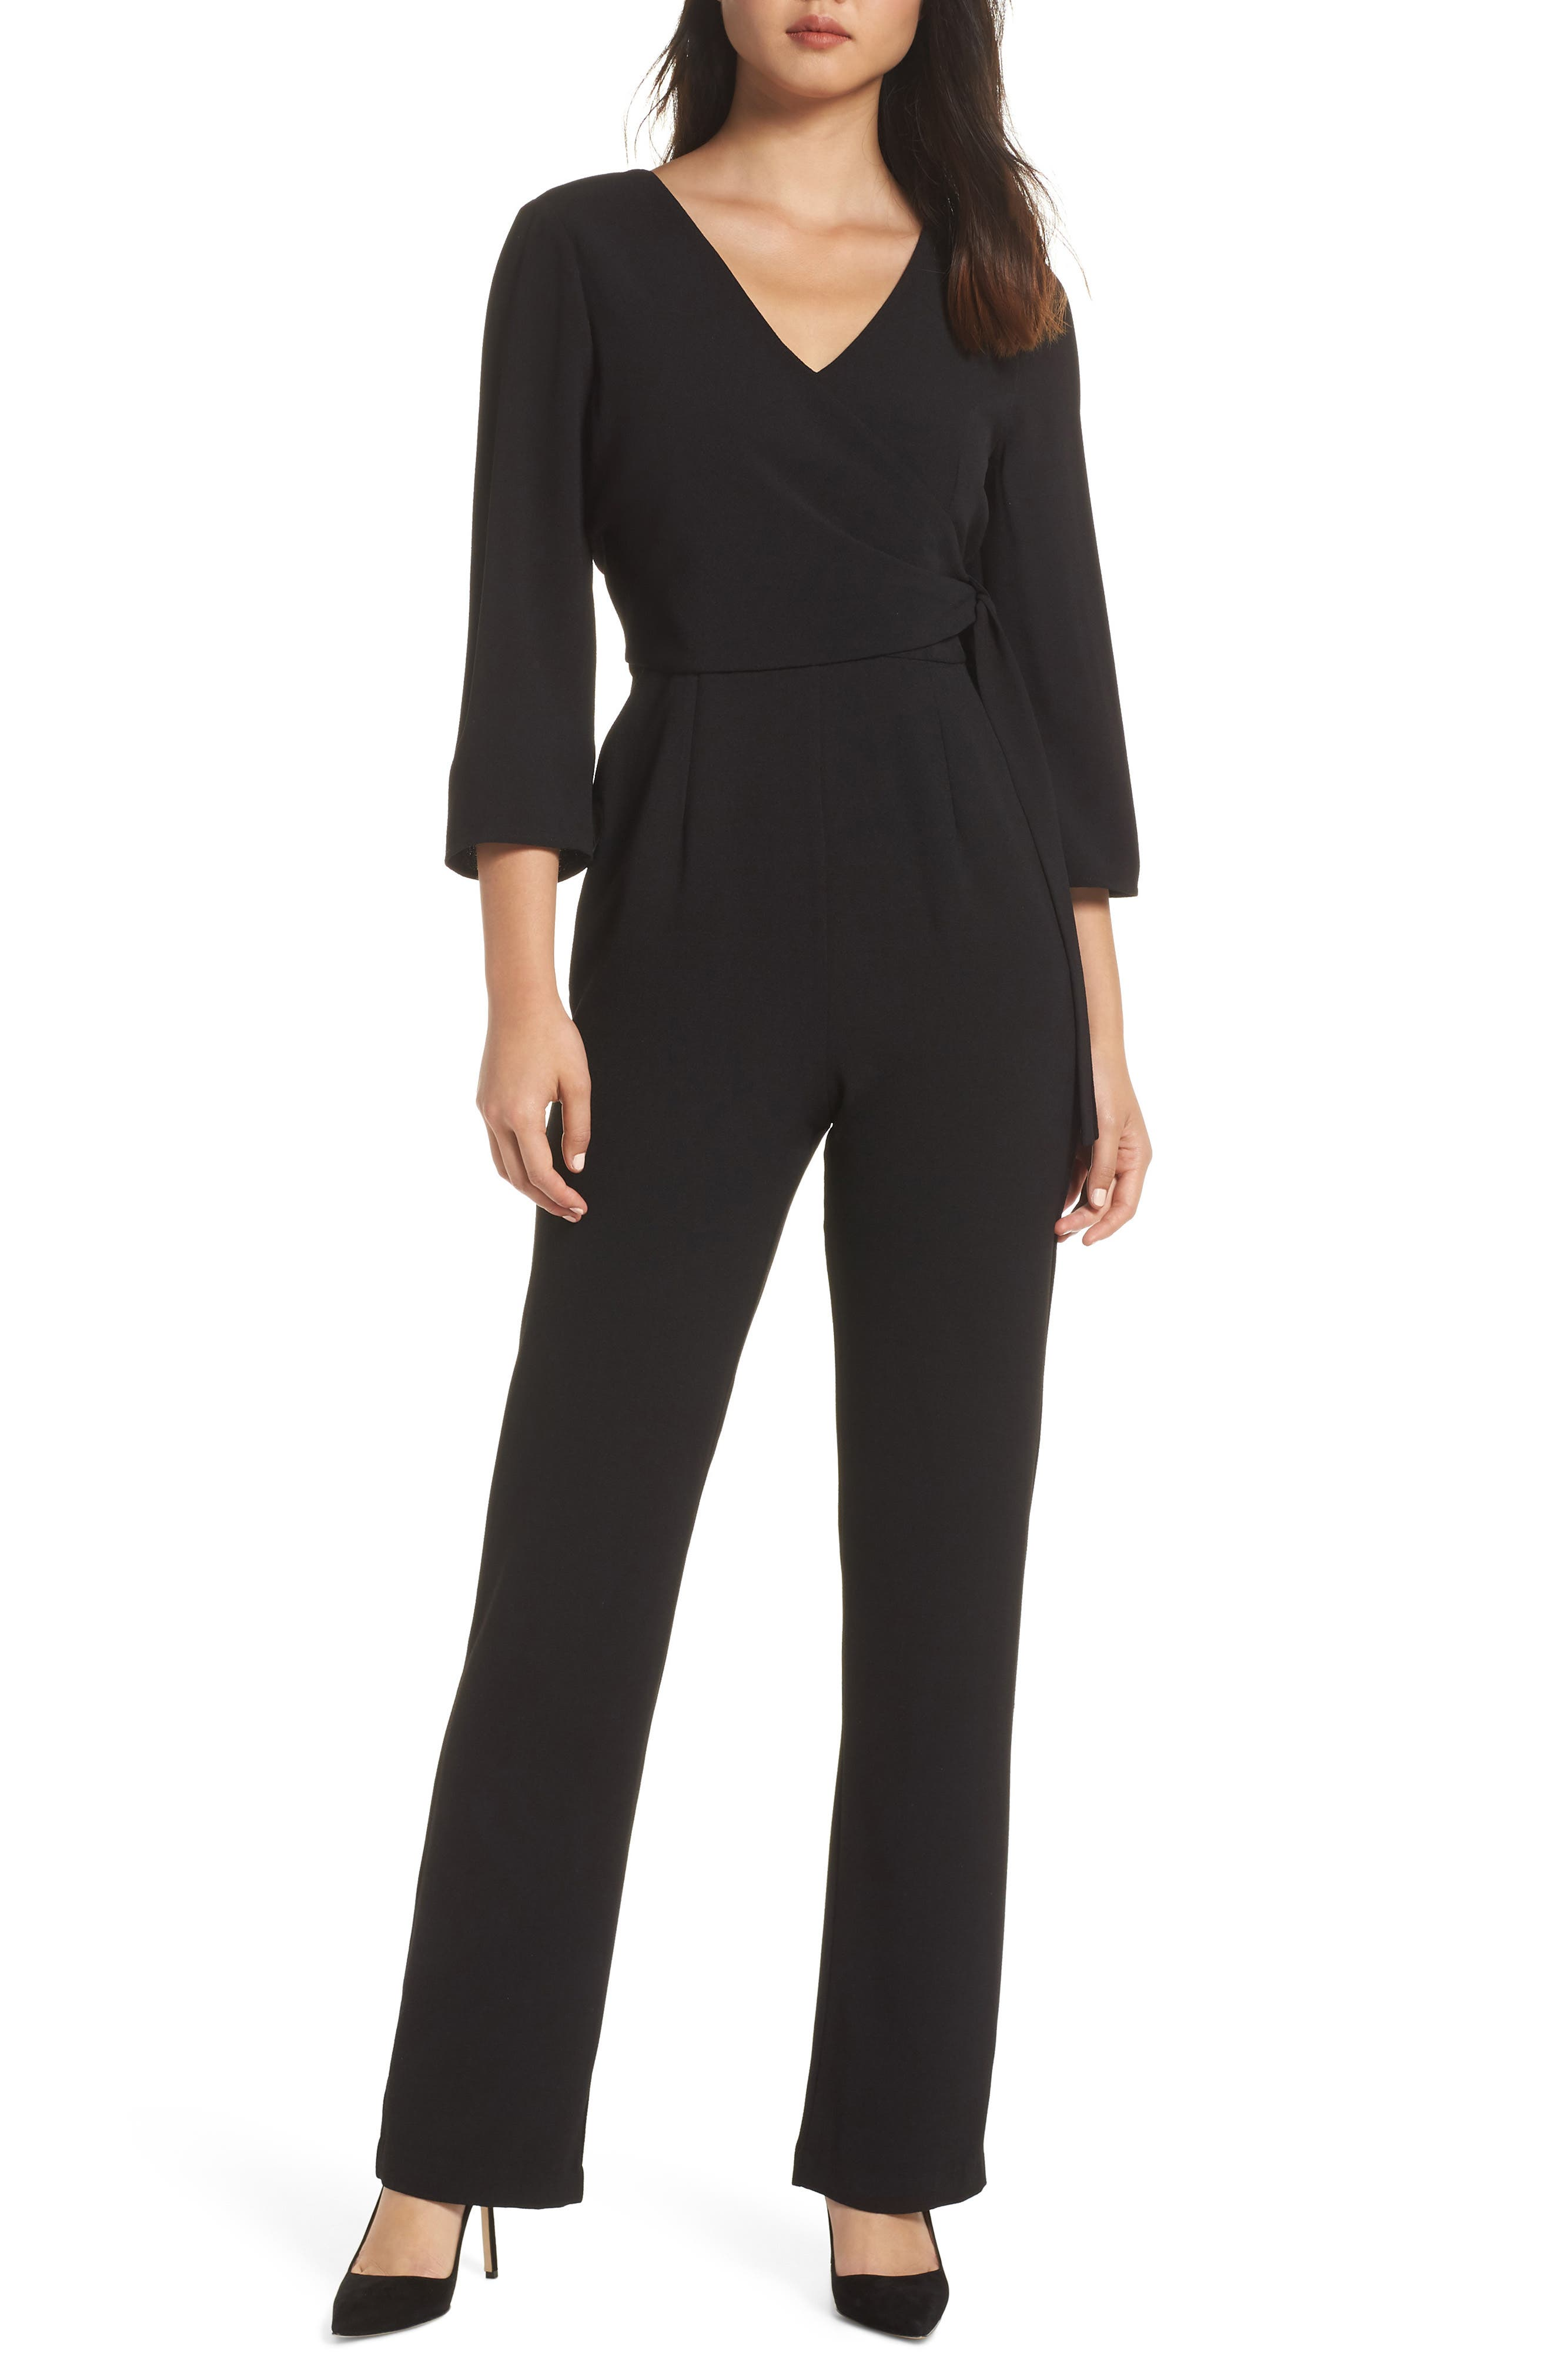 CHARLES HENRY Faux Wrap Jumpsuit in Black